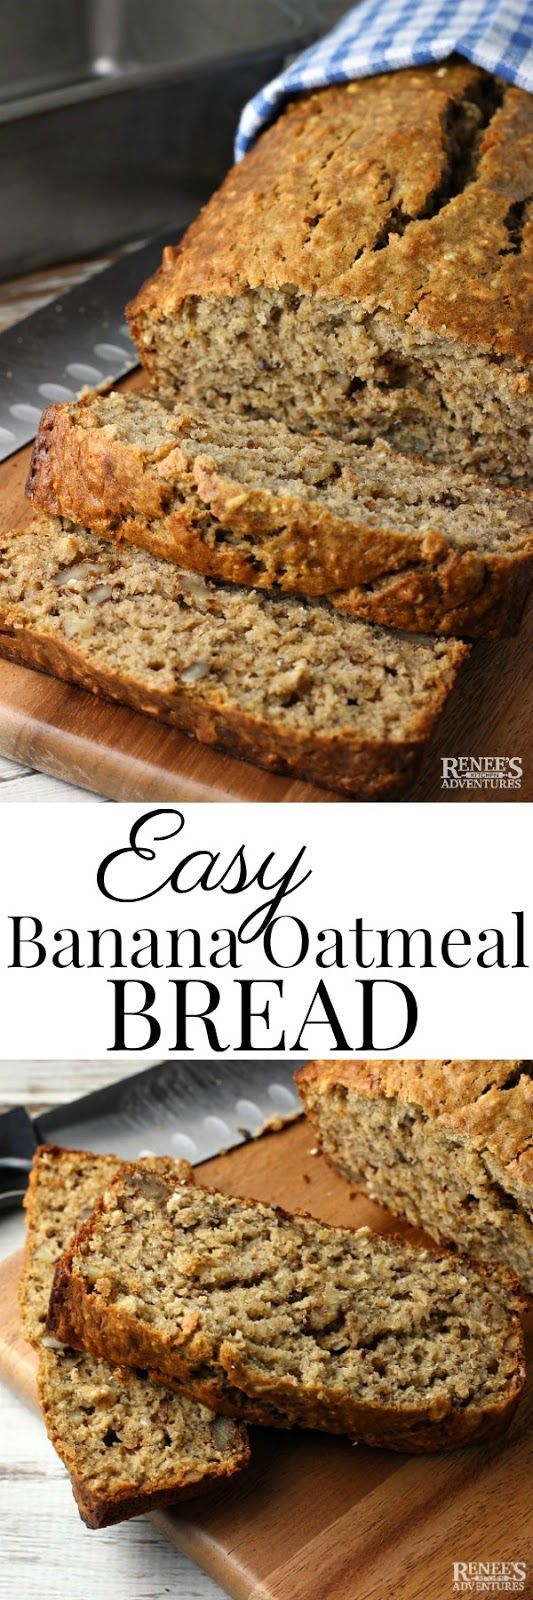 909 best Bread images on Pinterest | Bread shop, Breakfast and Petit ...